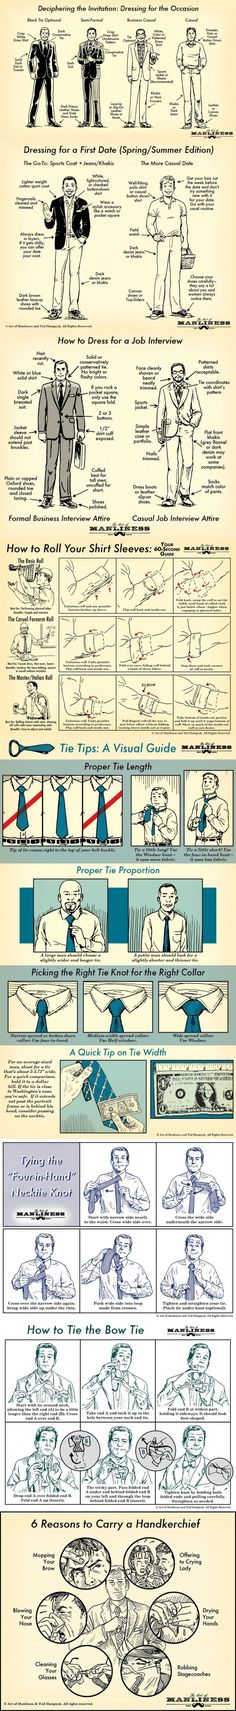 Infographic: Deciphering the Invitation: Dressing for the Occasion #infographic